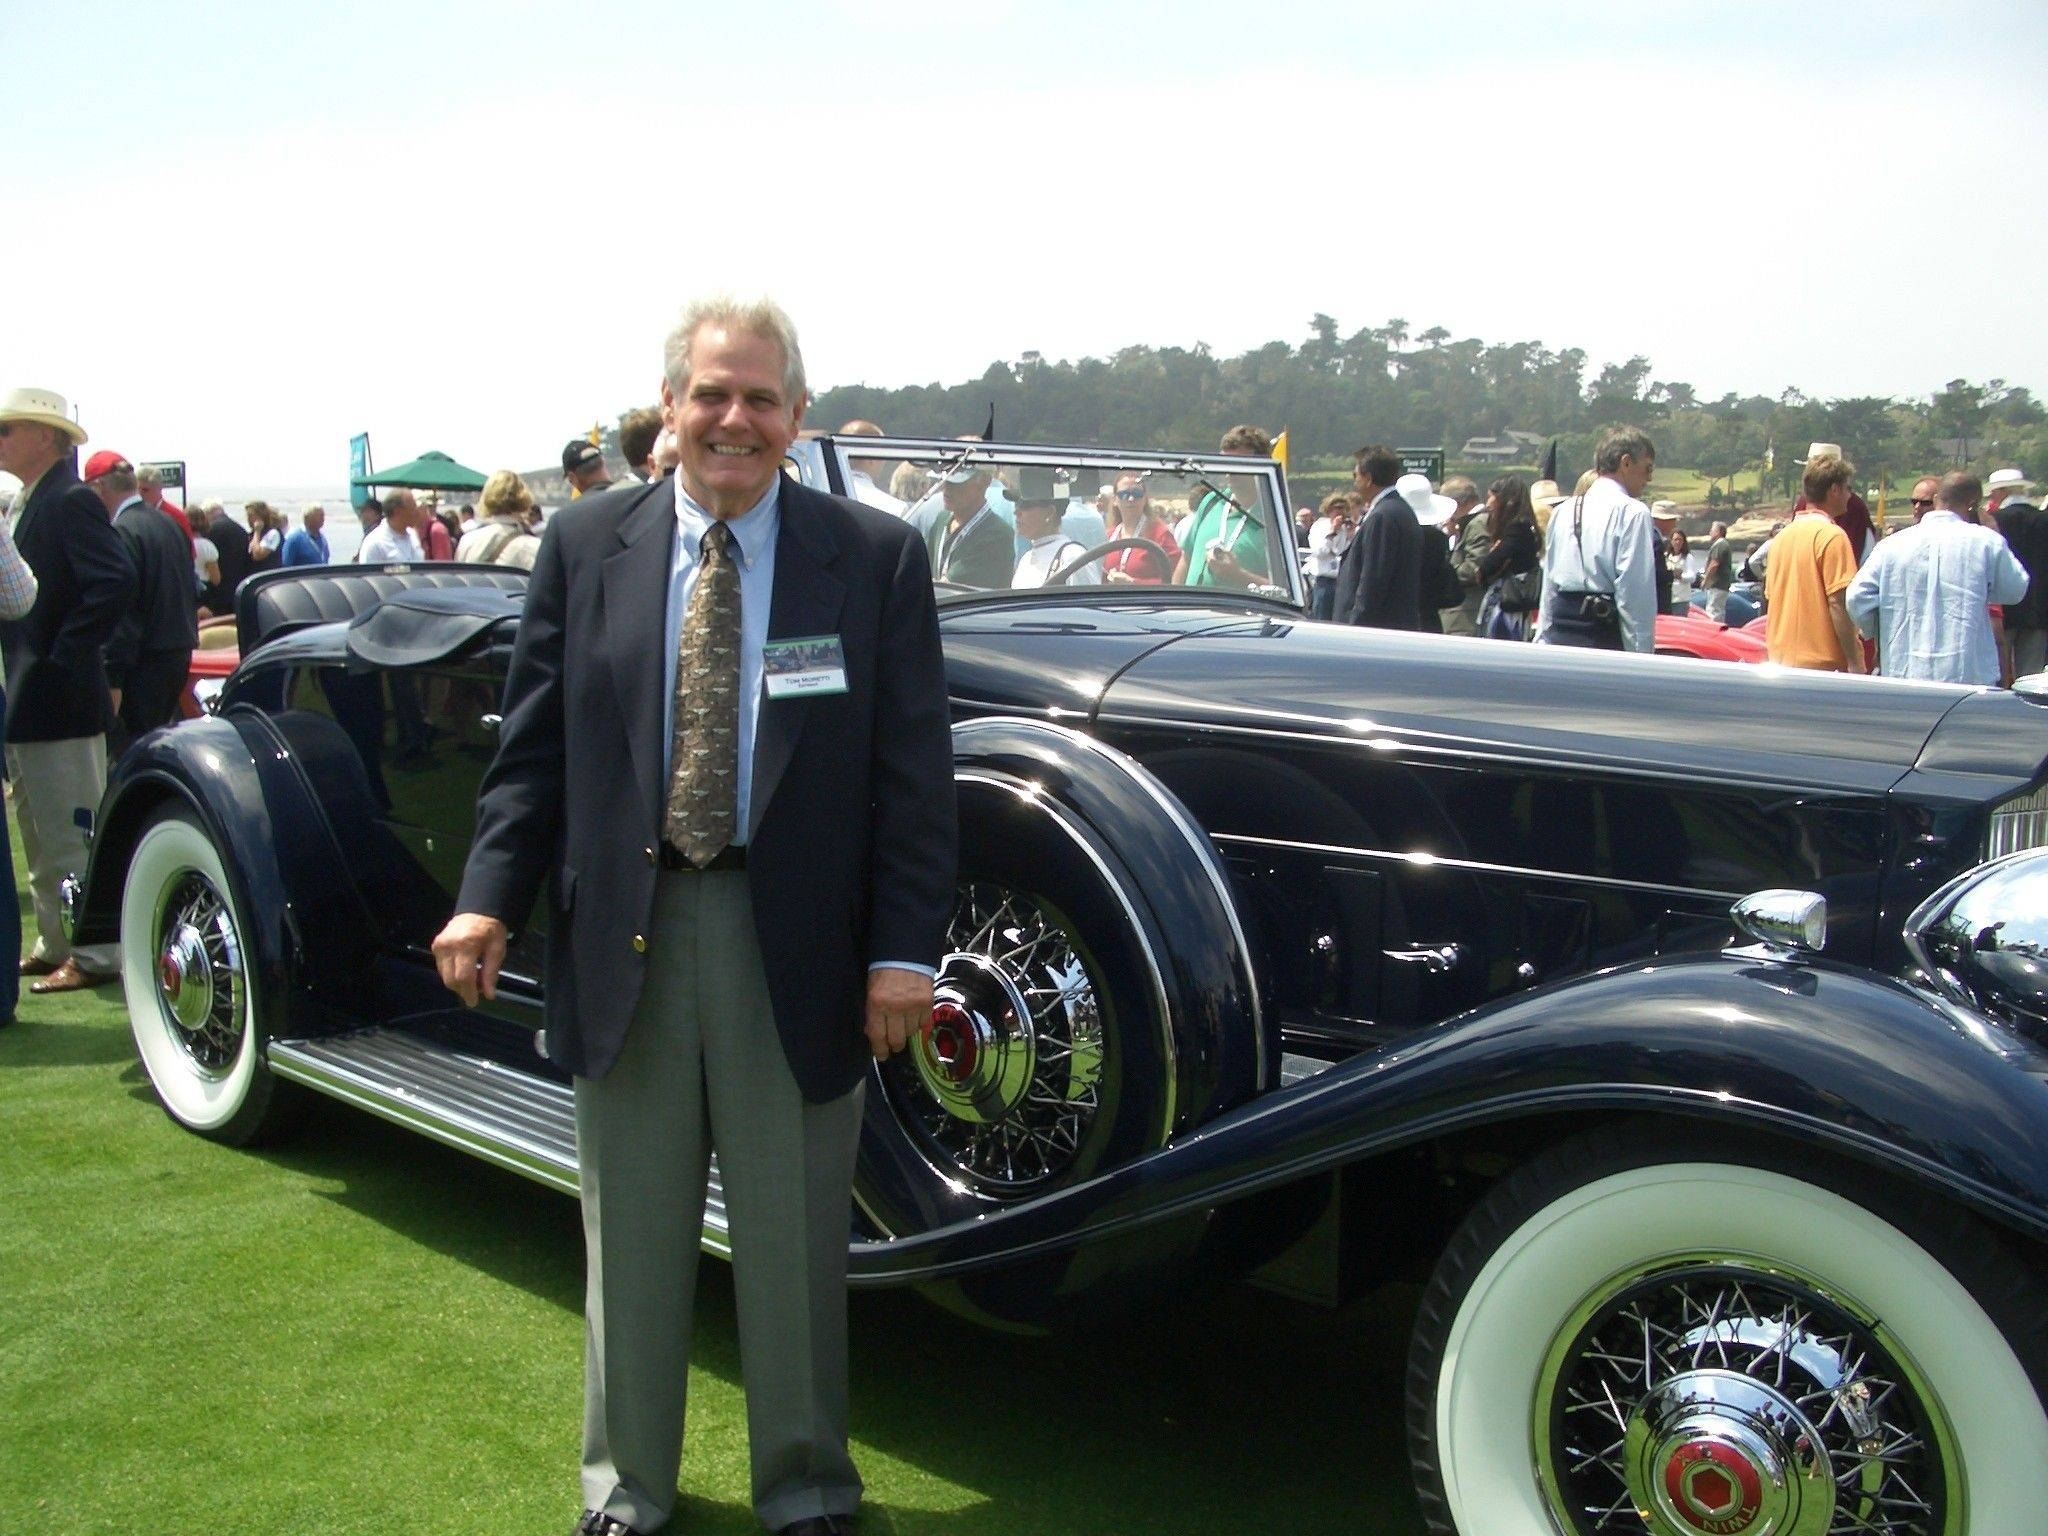 Courtesy of Joette DuranThomas A. Moretti of Inverness poses with the 1932 Packard Twin Six 905 Coupe Roadster that won first place in the 2009 Pebble Beach Concours d'Elegance after he restored it.